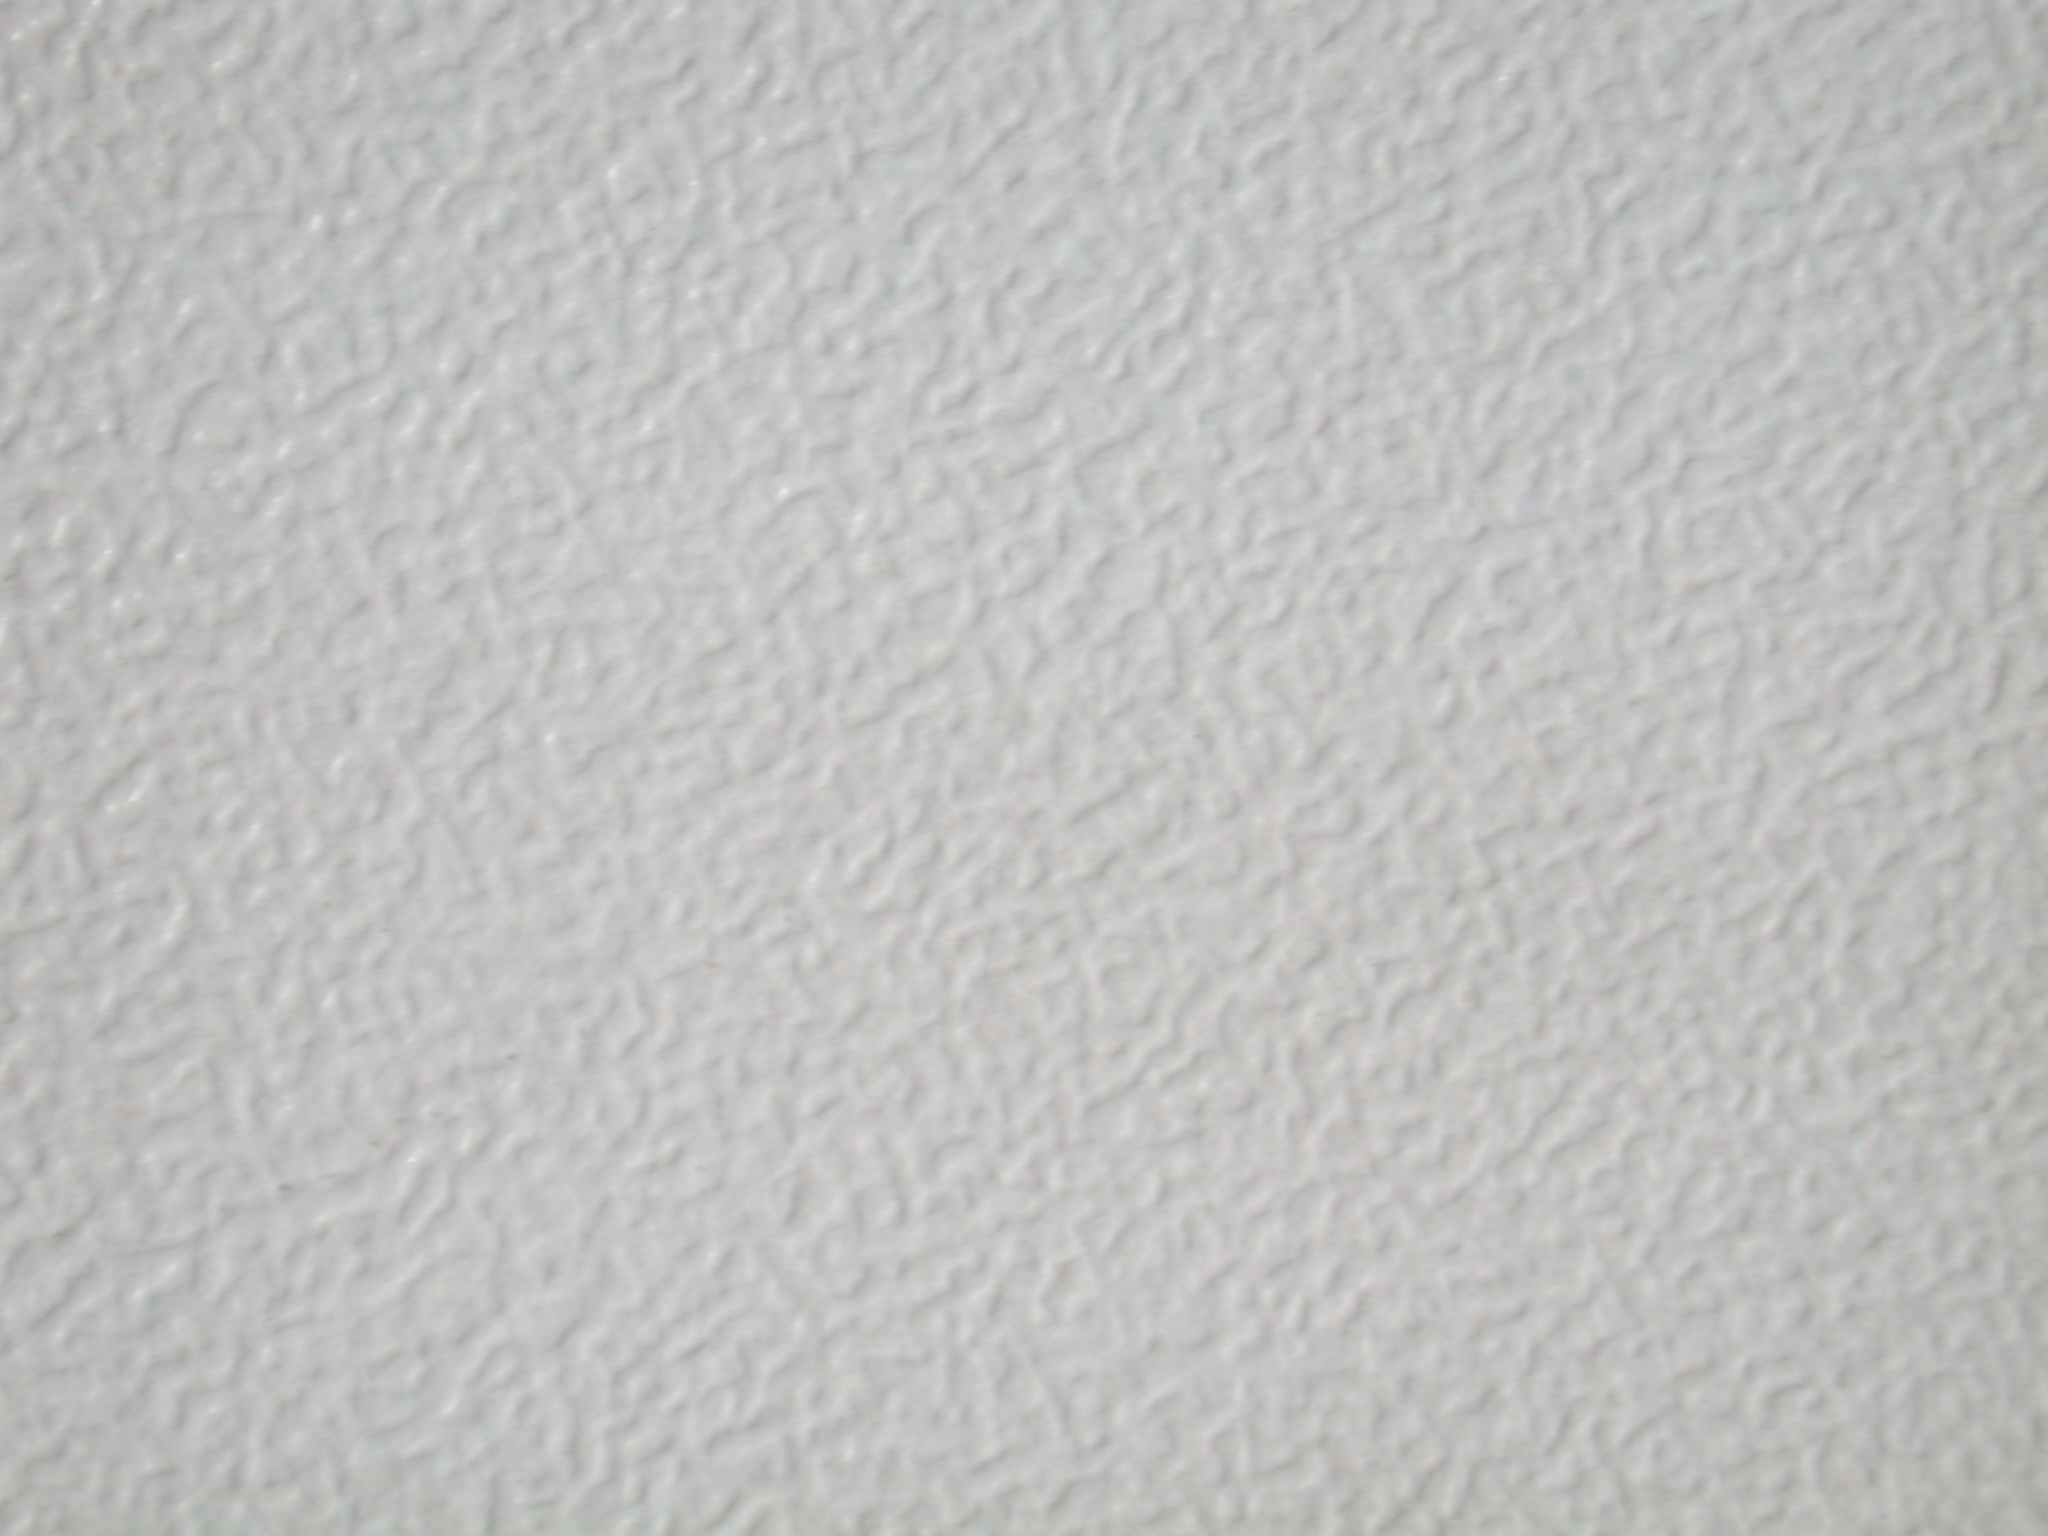 Smooth White Wall Texture Smooth Wall Texture Smooth